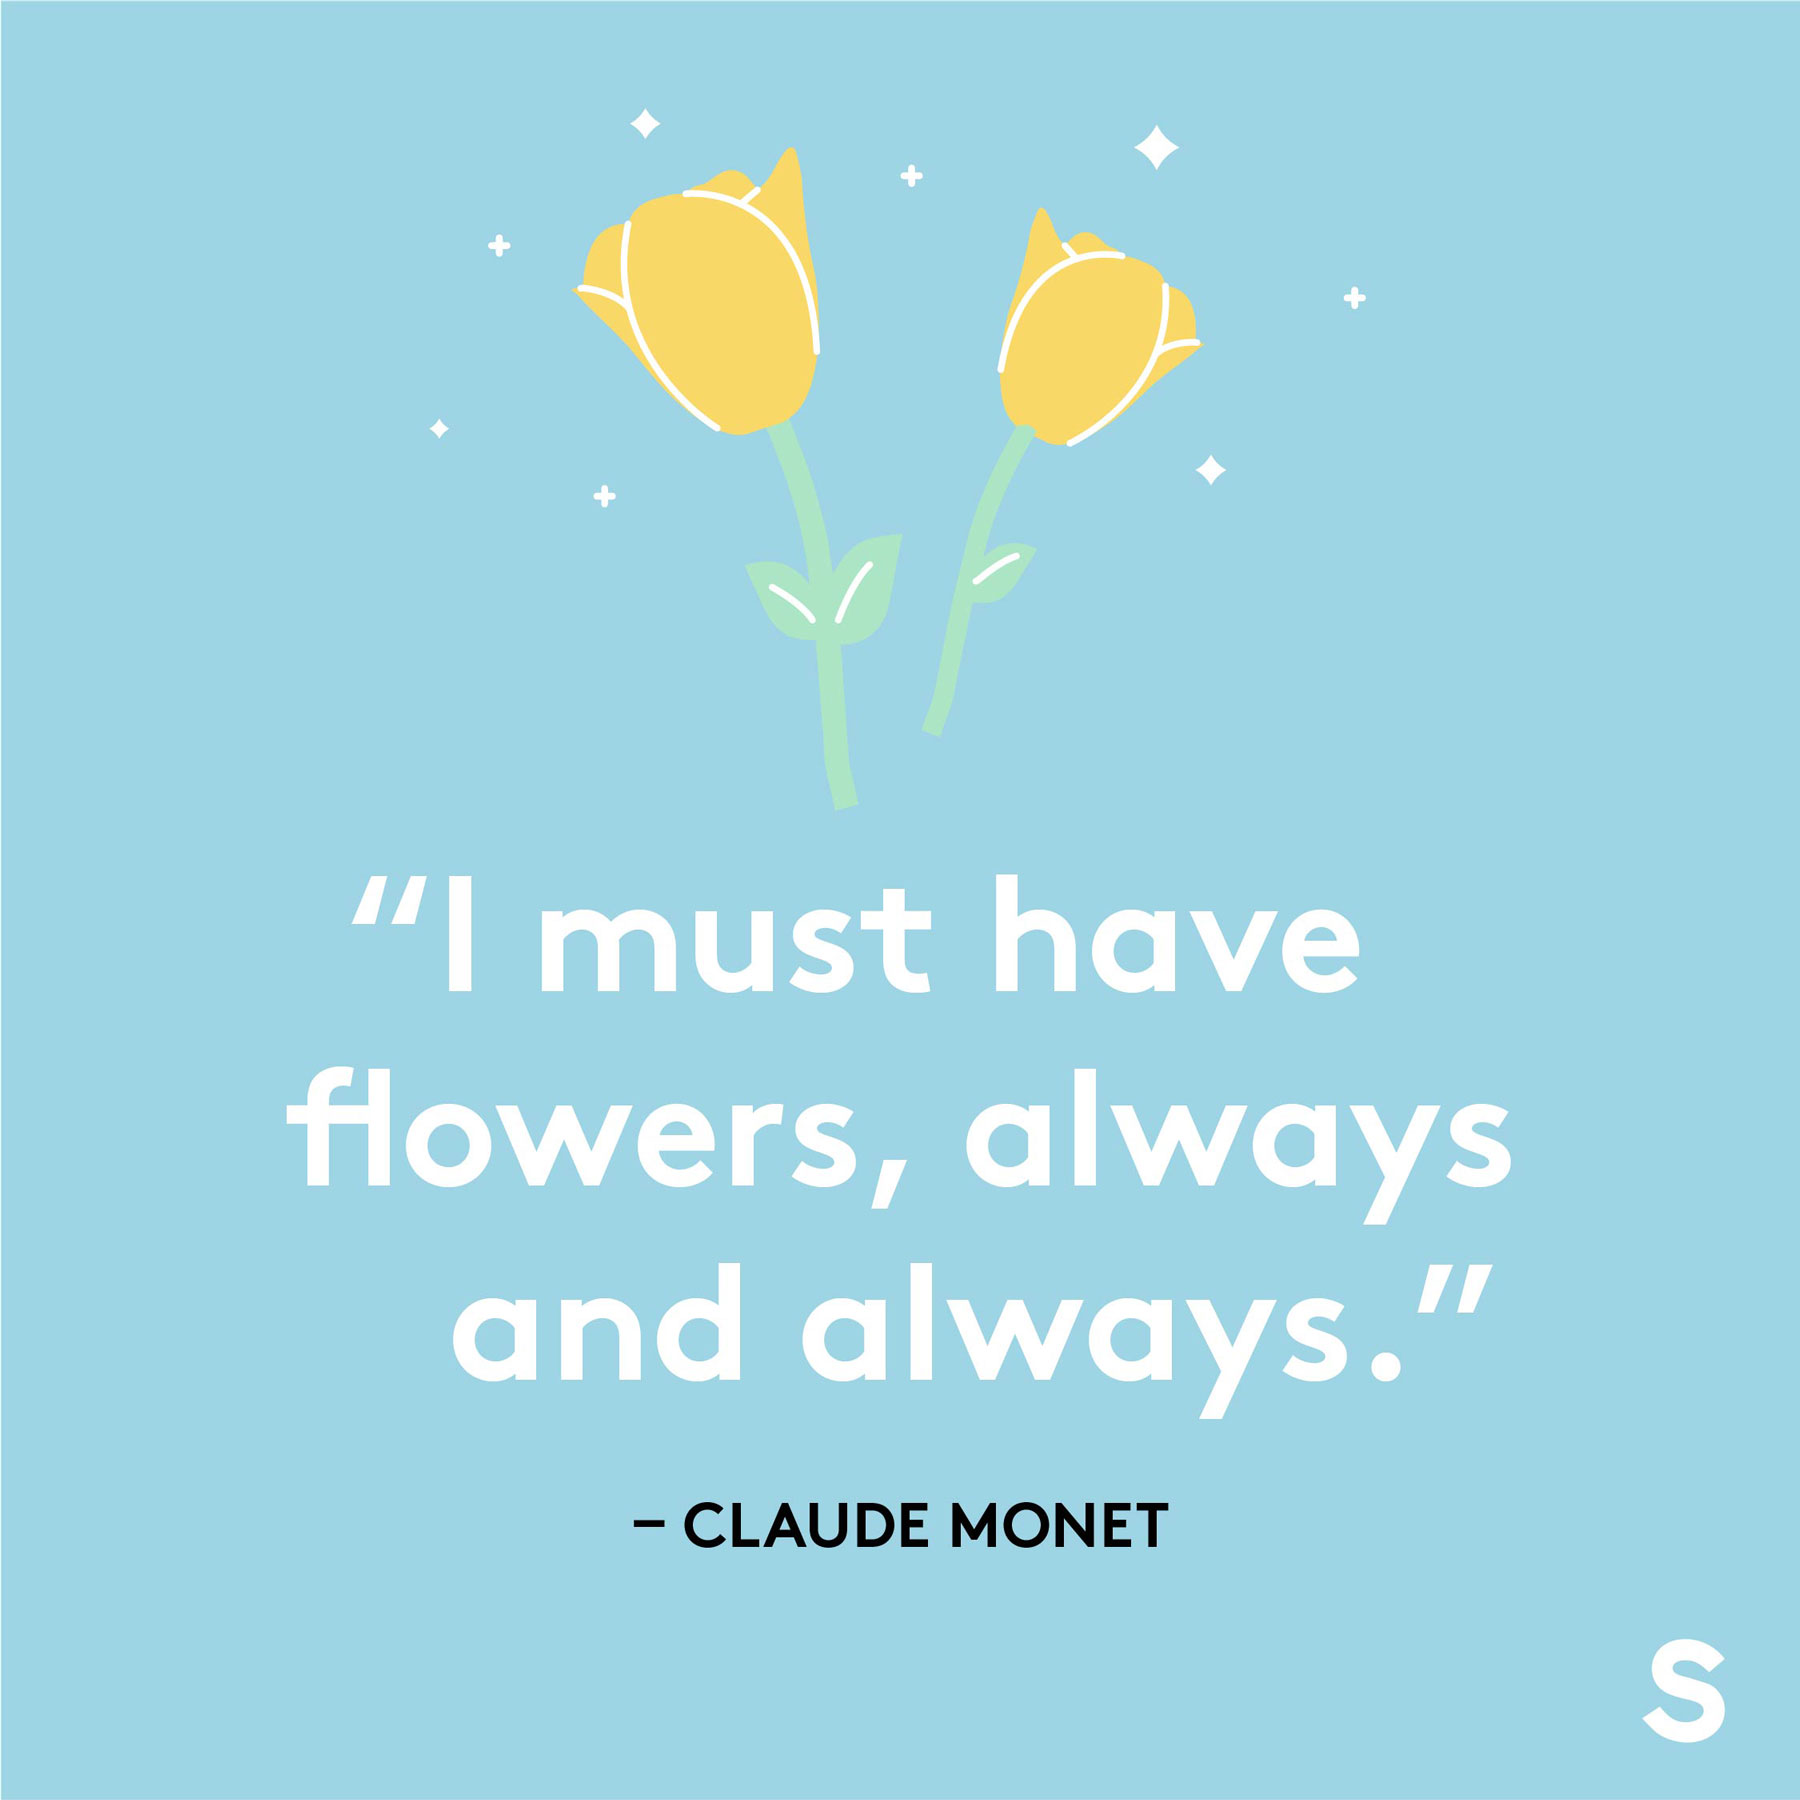 Easter quotes, captions, and messages - Claude Monet quote